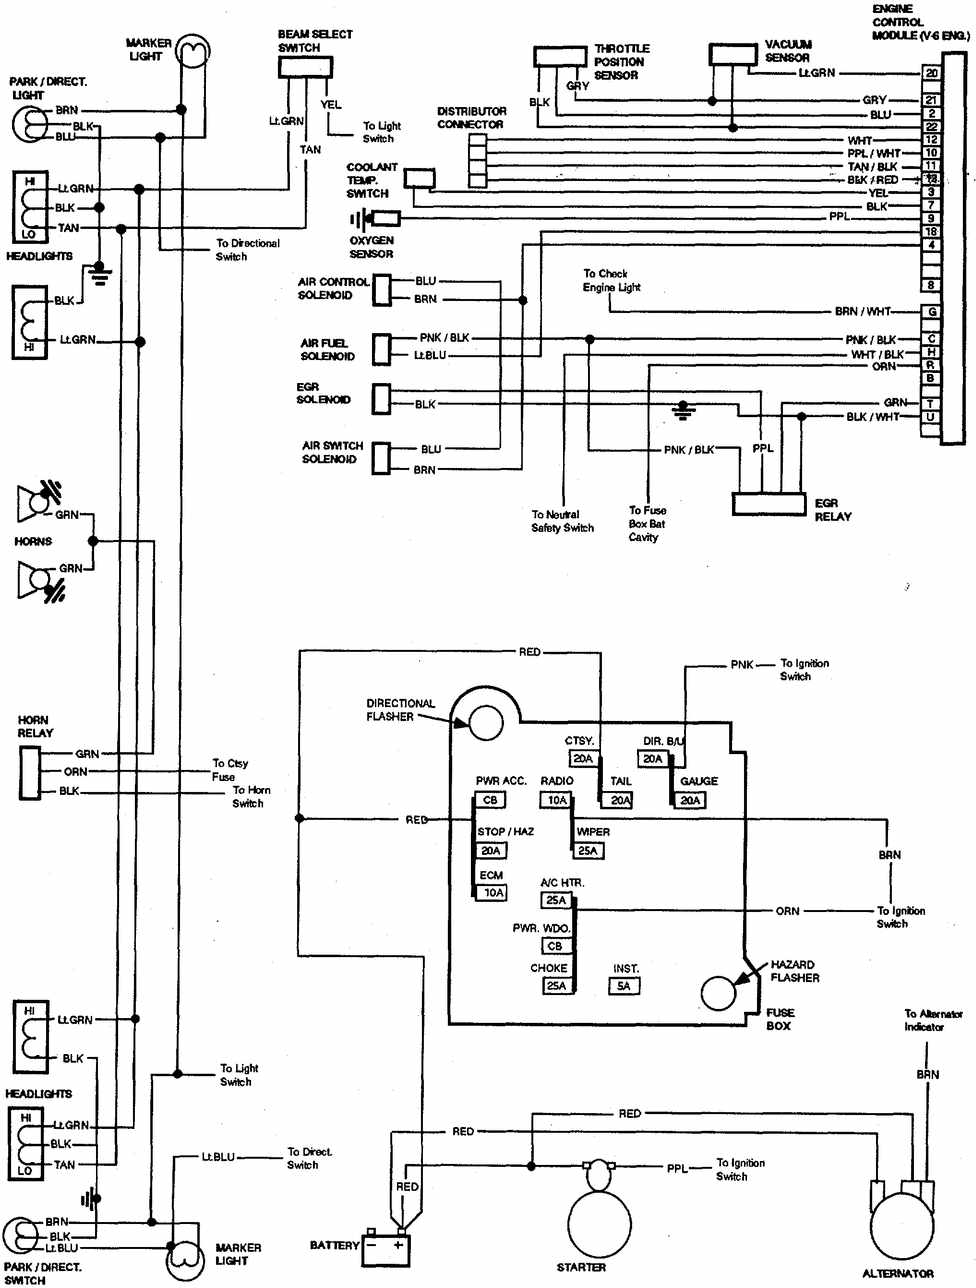 73 79 Ford Truck Fuse Panel Diagram Wiring Will Be A Thing 2000 F 150 Chevrolet V8 Trucks 1981 1987 Electrical 2002